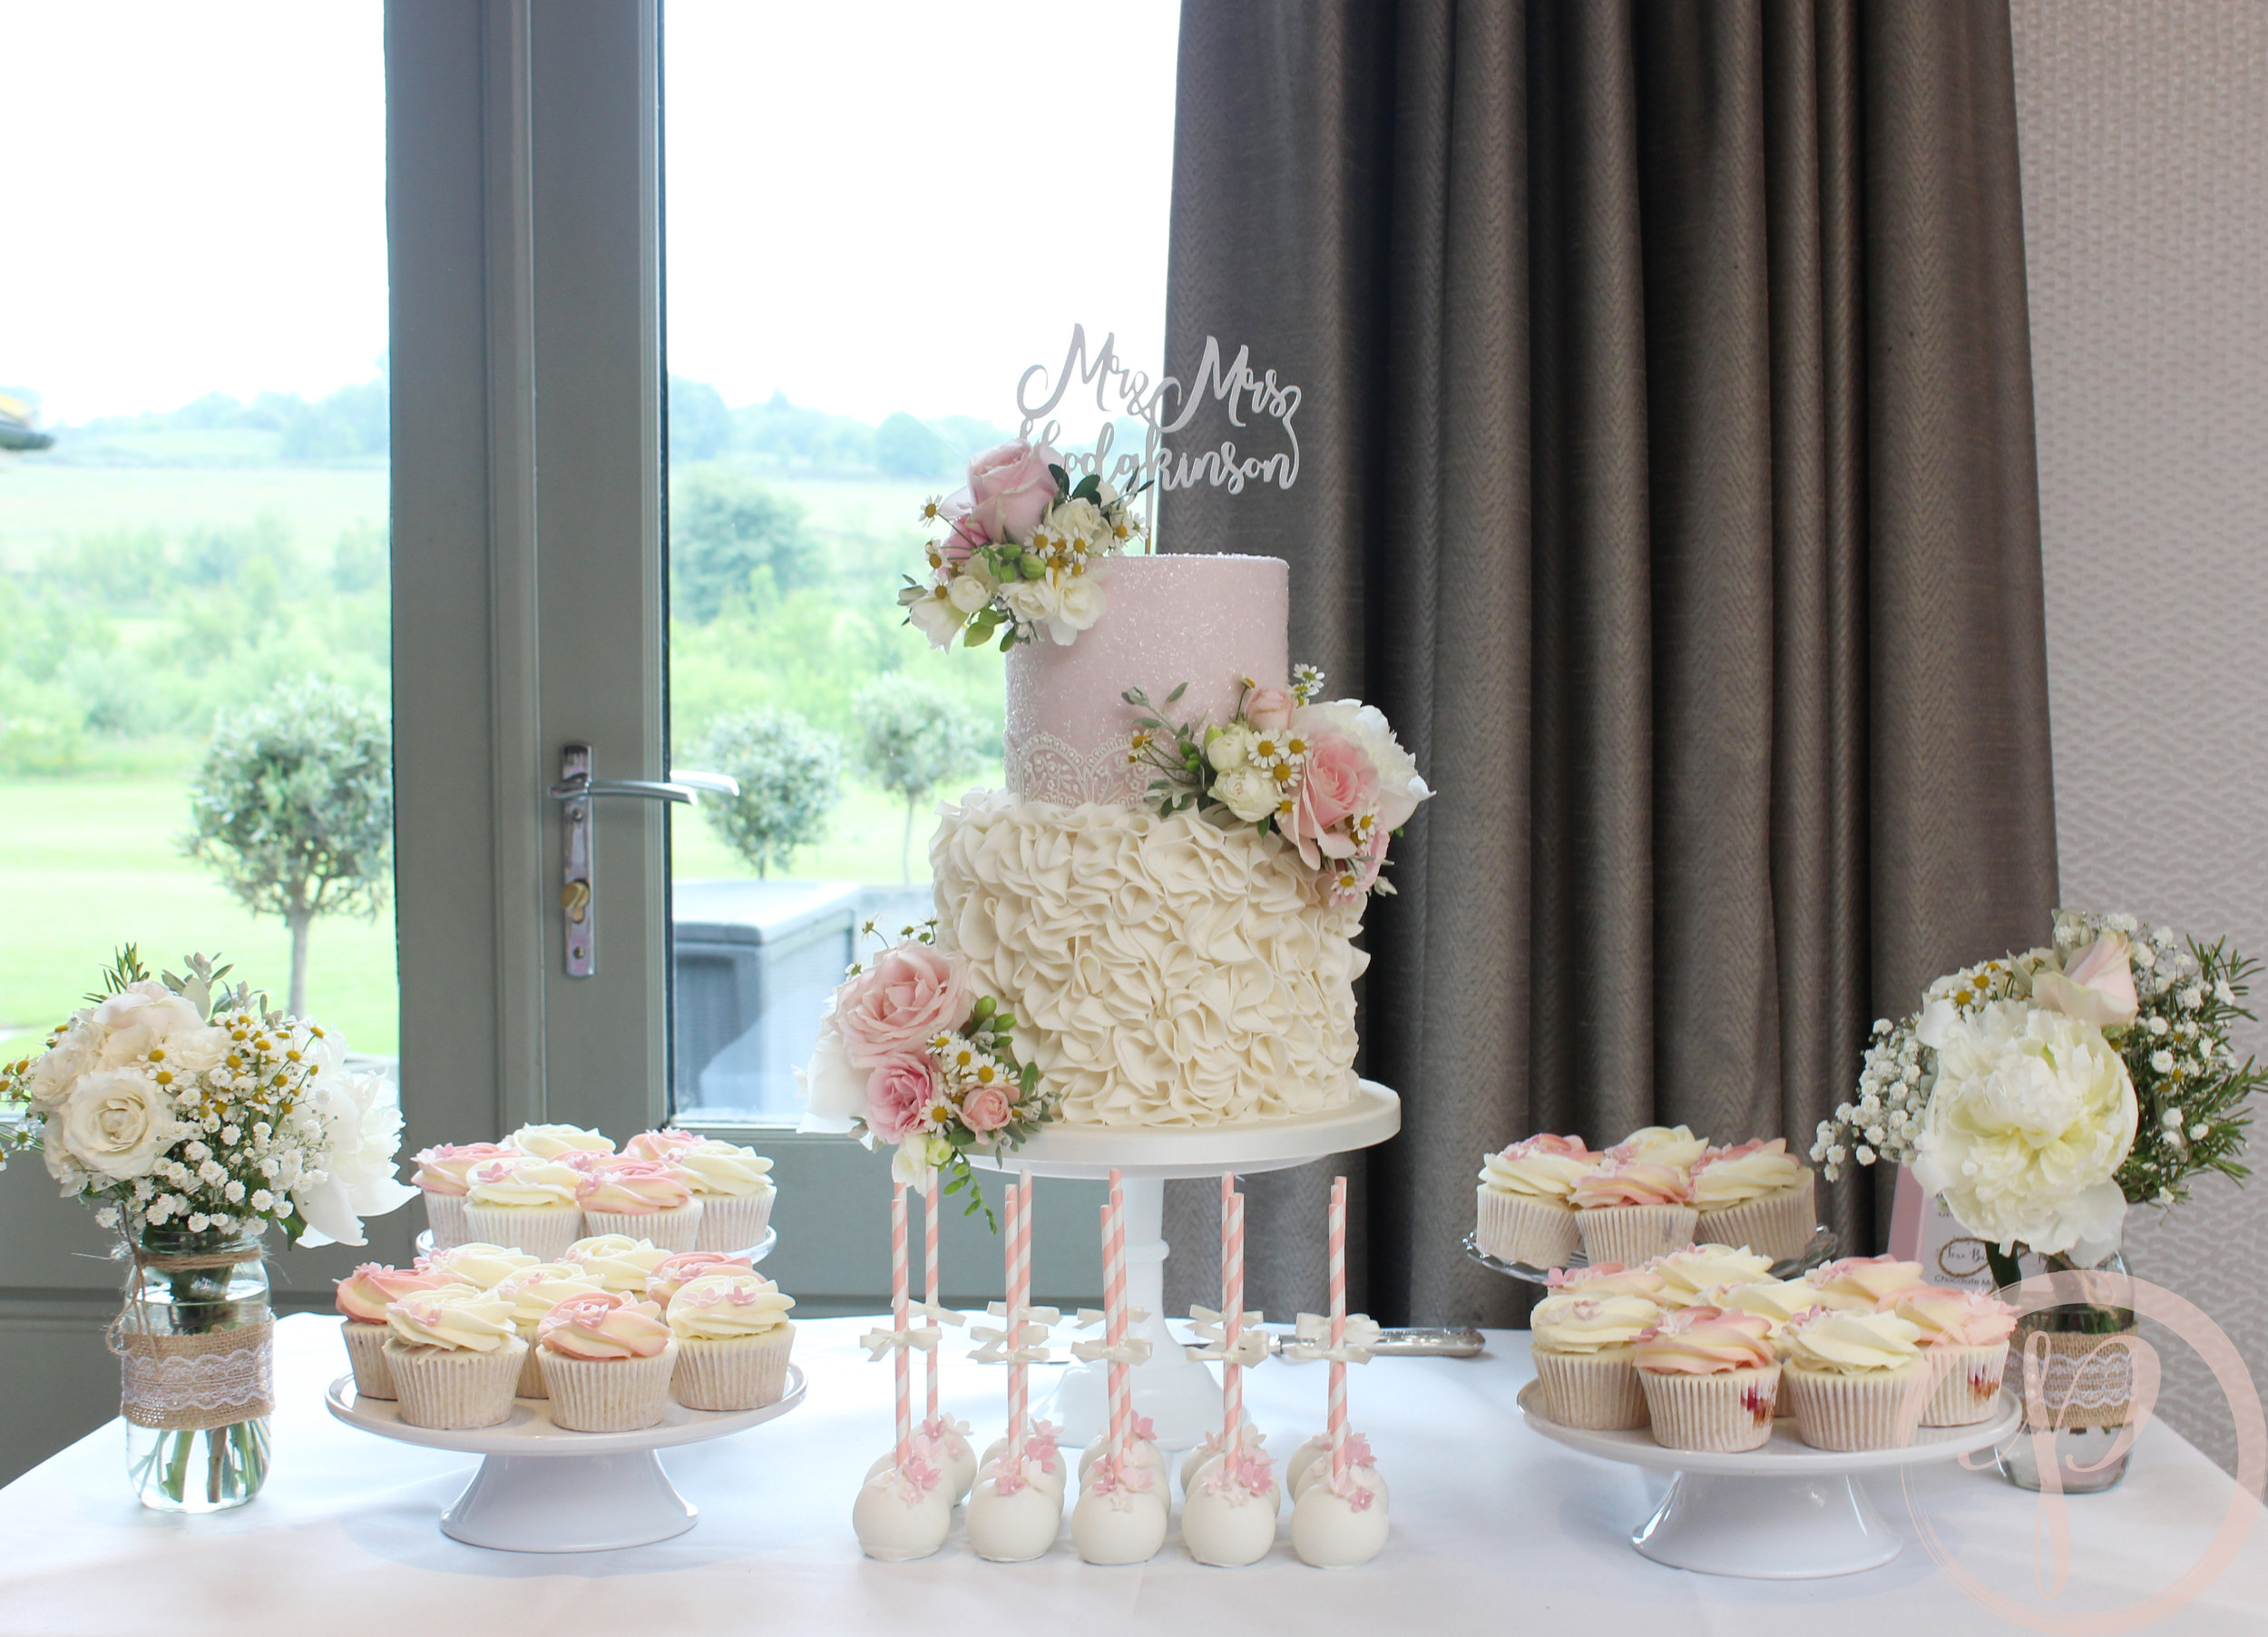 blush ruffle wedding cake table cupcakes cakepops fresh flowers.jpg